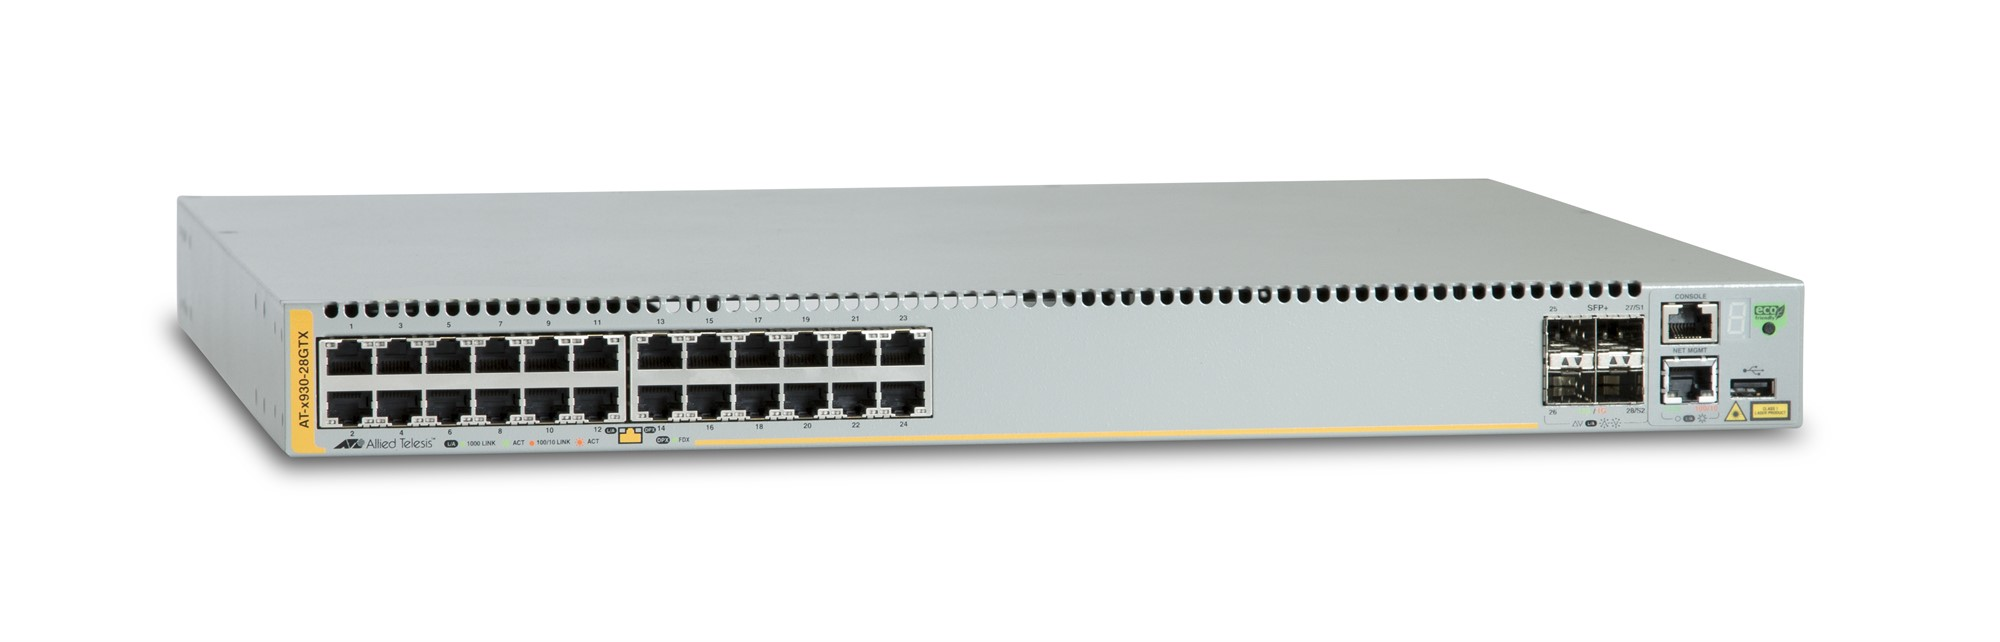 ALLIED TELESIS AT-X930-28GTX MANAGED NETWORK SWITCH L3 GIGABIT ETHERNET (10/100/1000) GREY